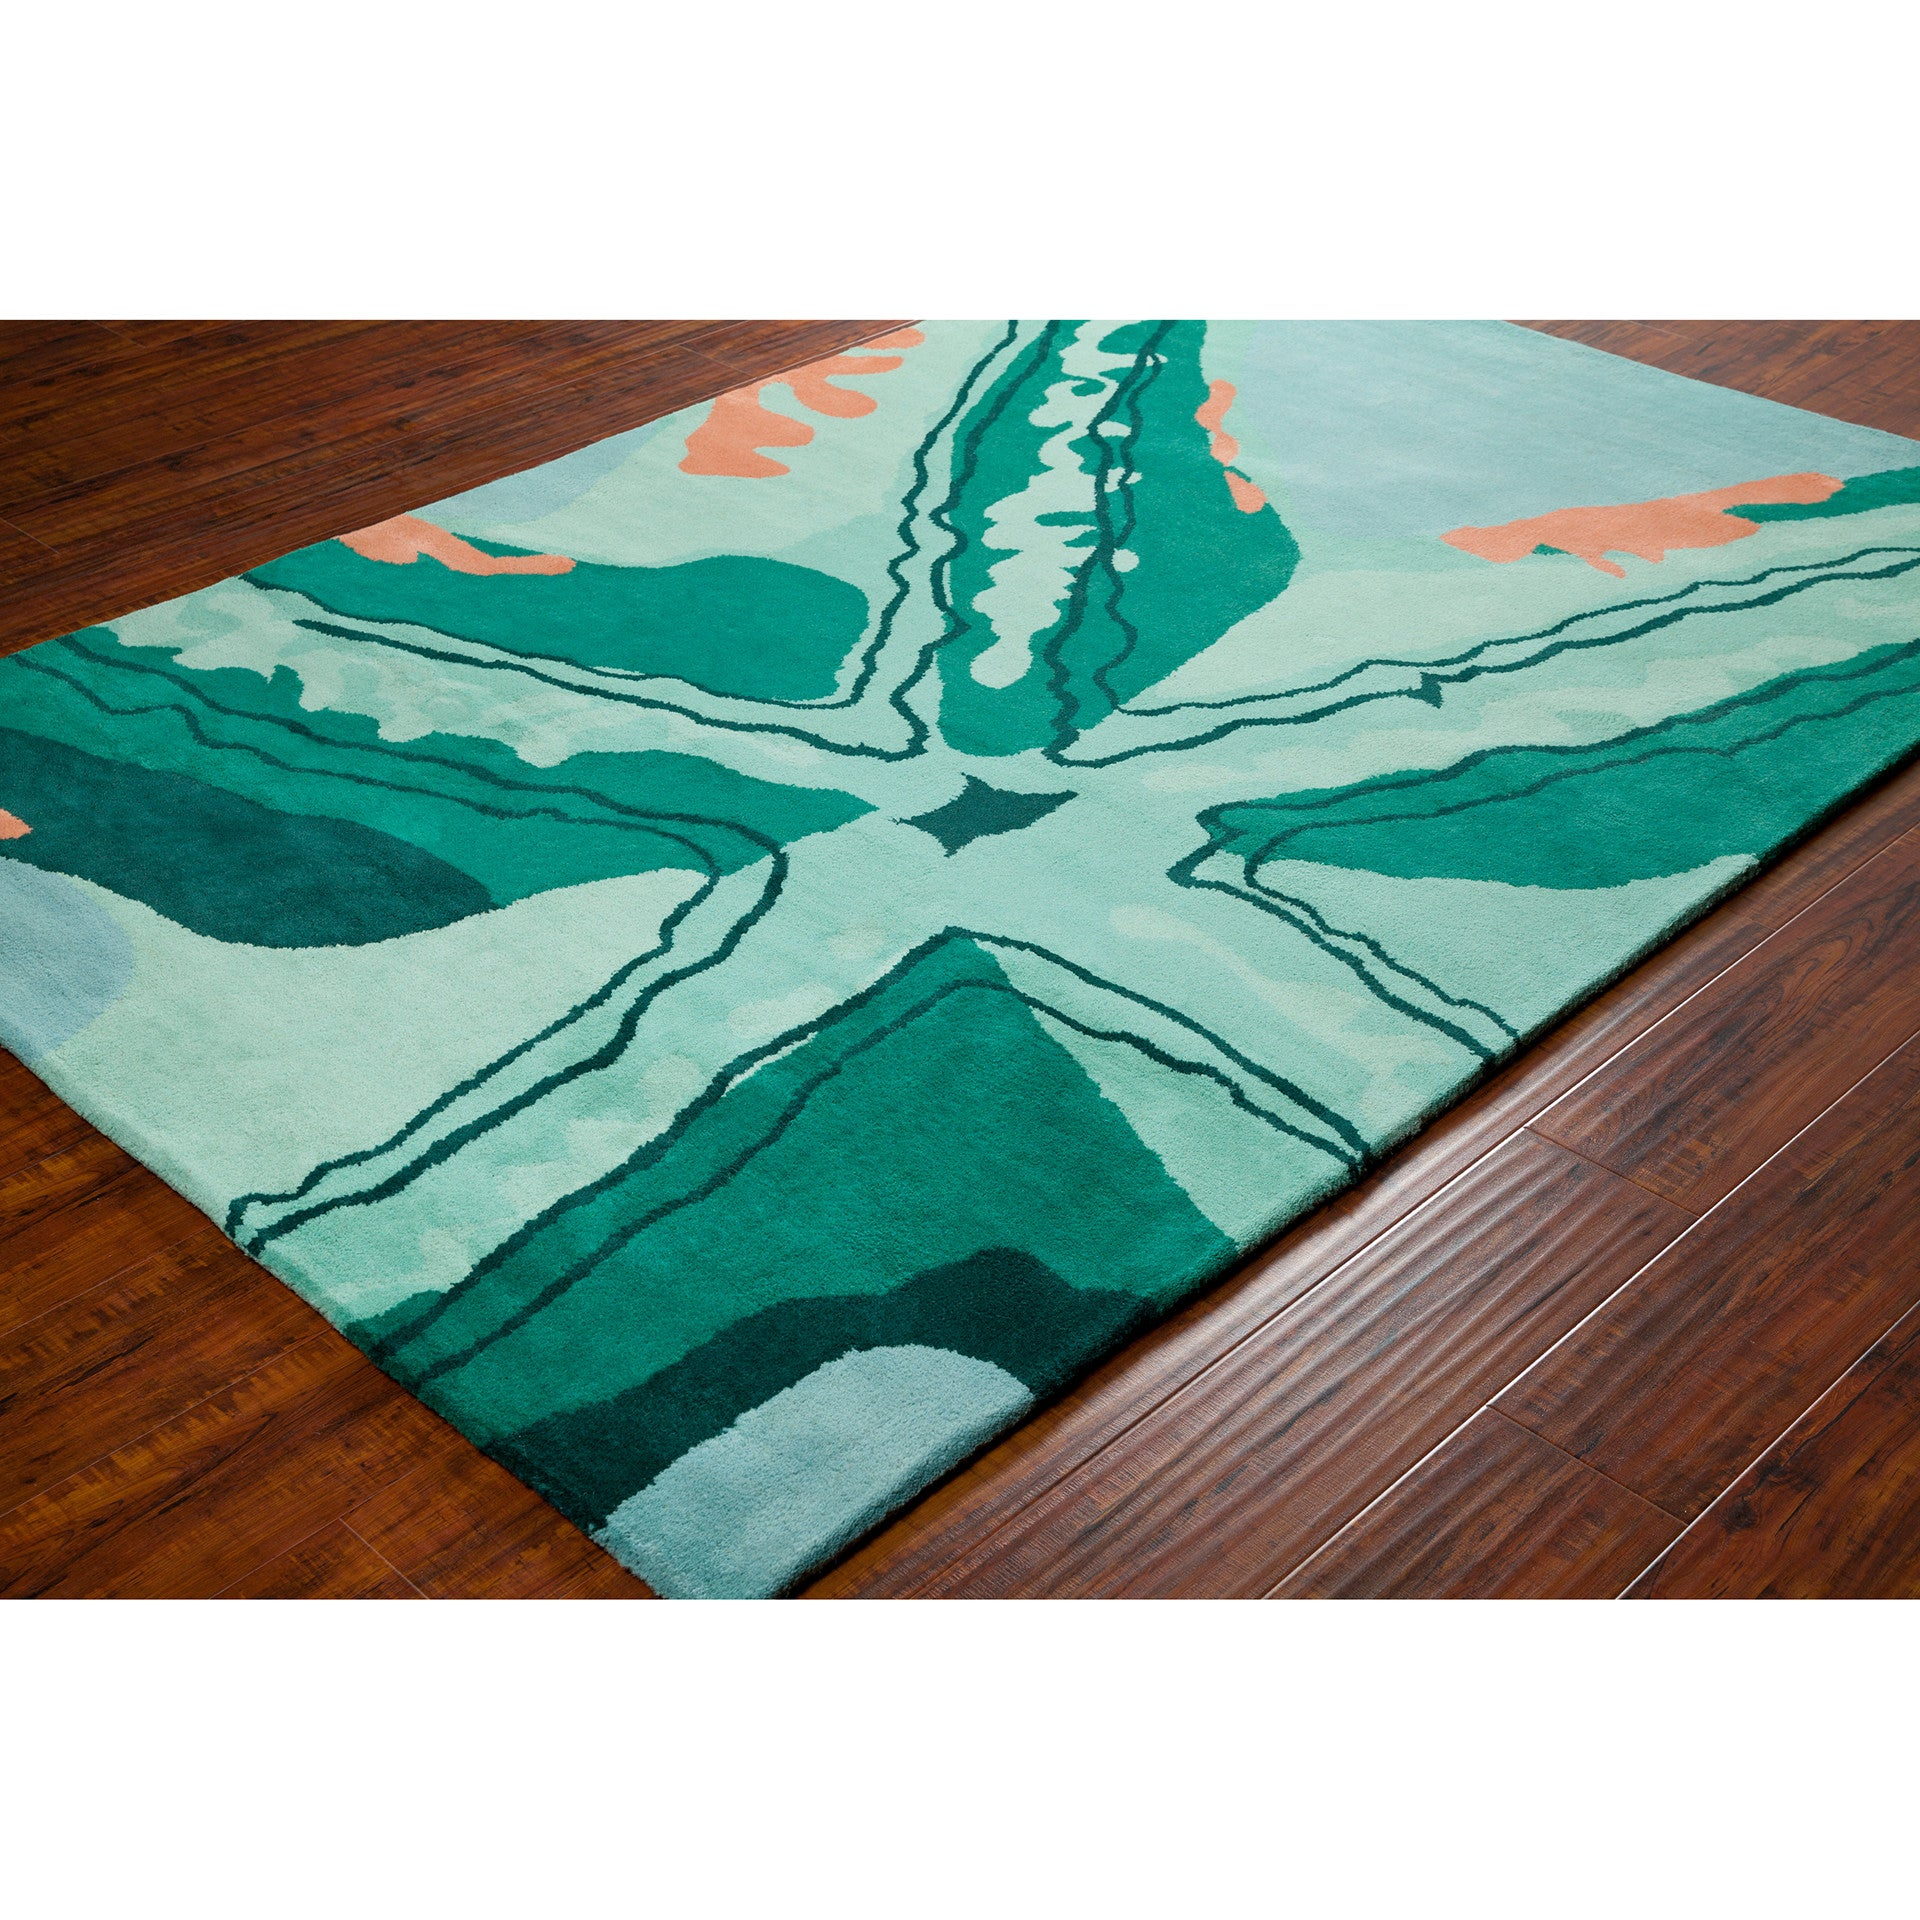 Chandra Stella Patterned Contemporary Wool Beige Aqua Area: Stella Collection Hand-Tufted Area Rug In Aqua, Green